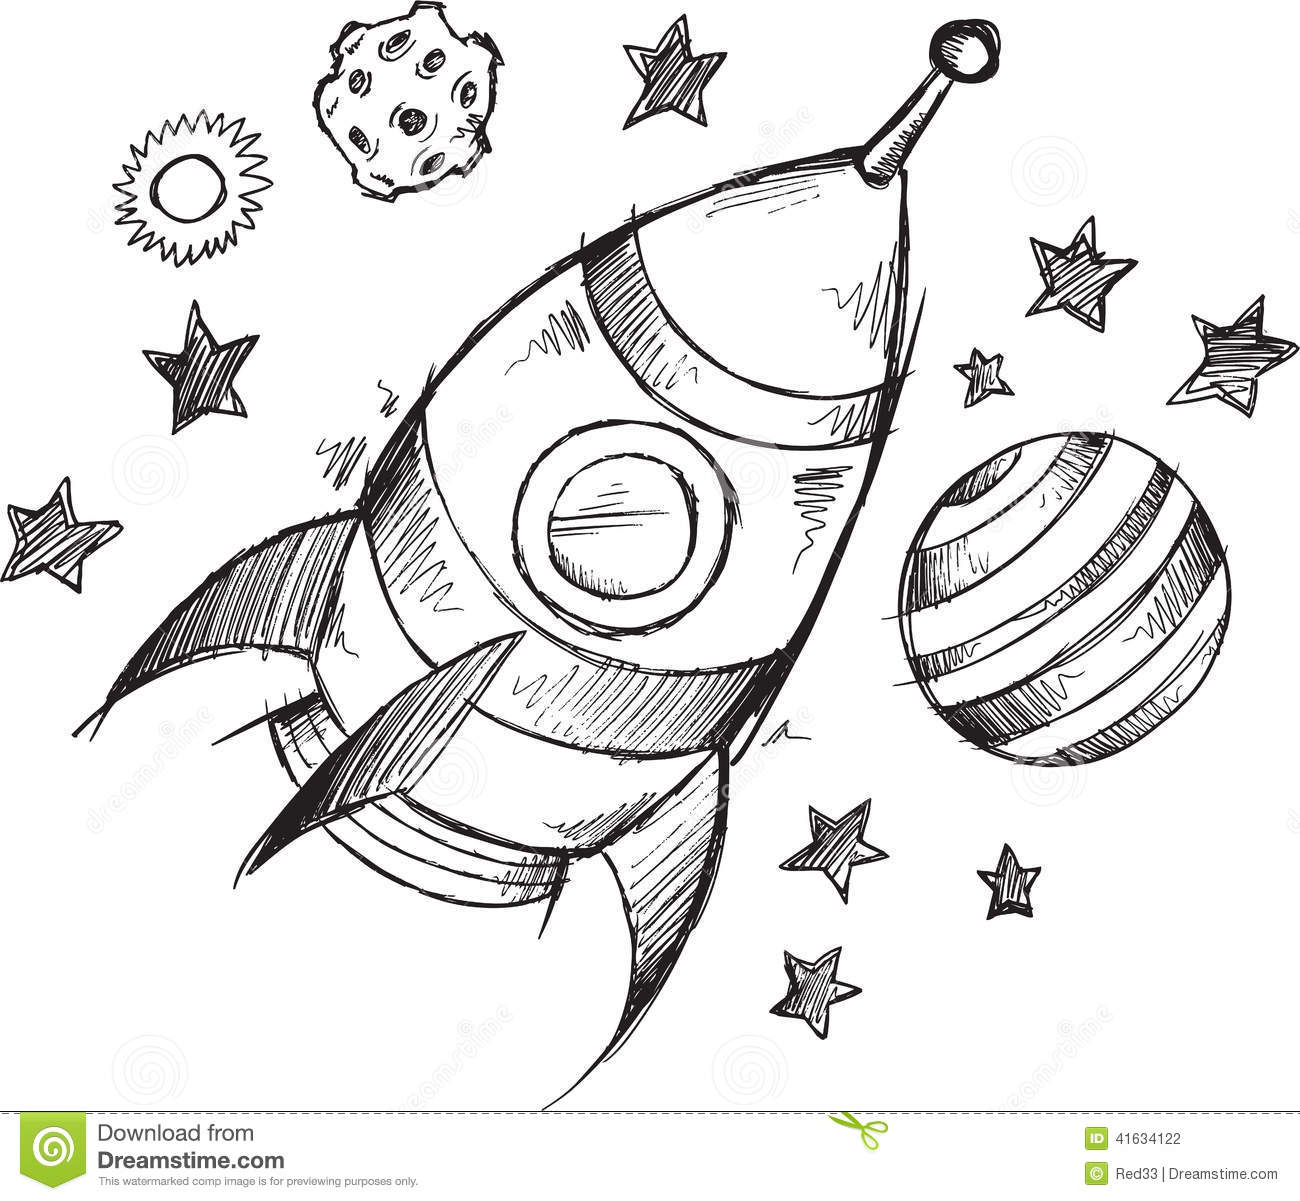 Rocket Space Doodle Sketch Vector Stock Image 41634122